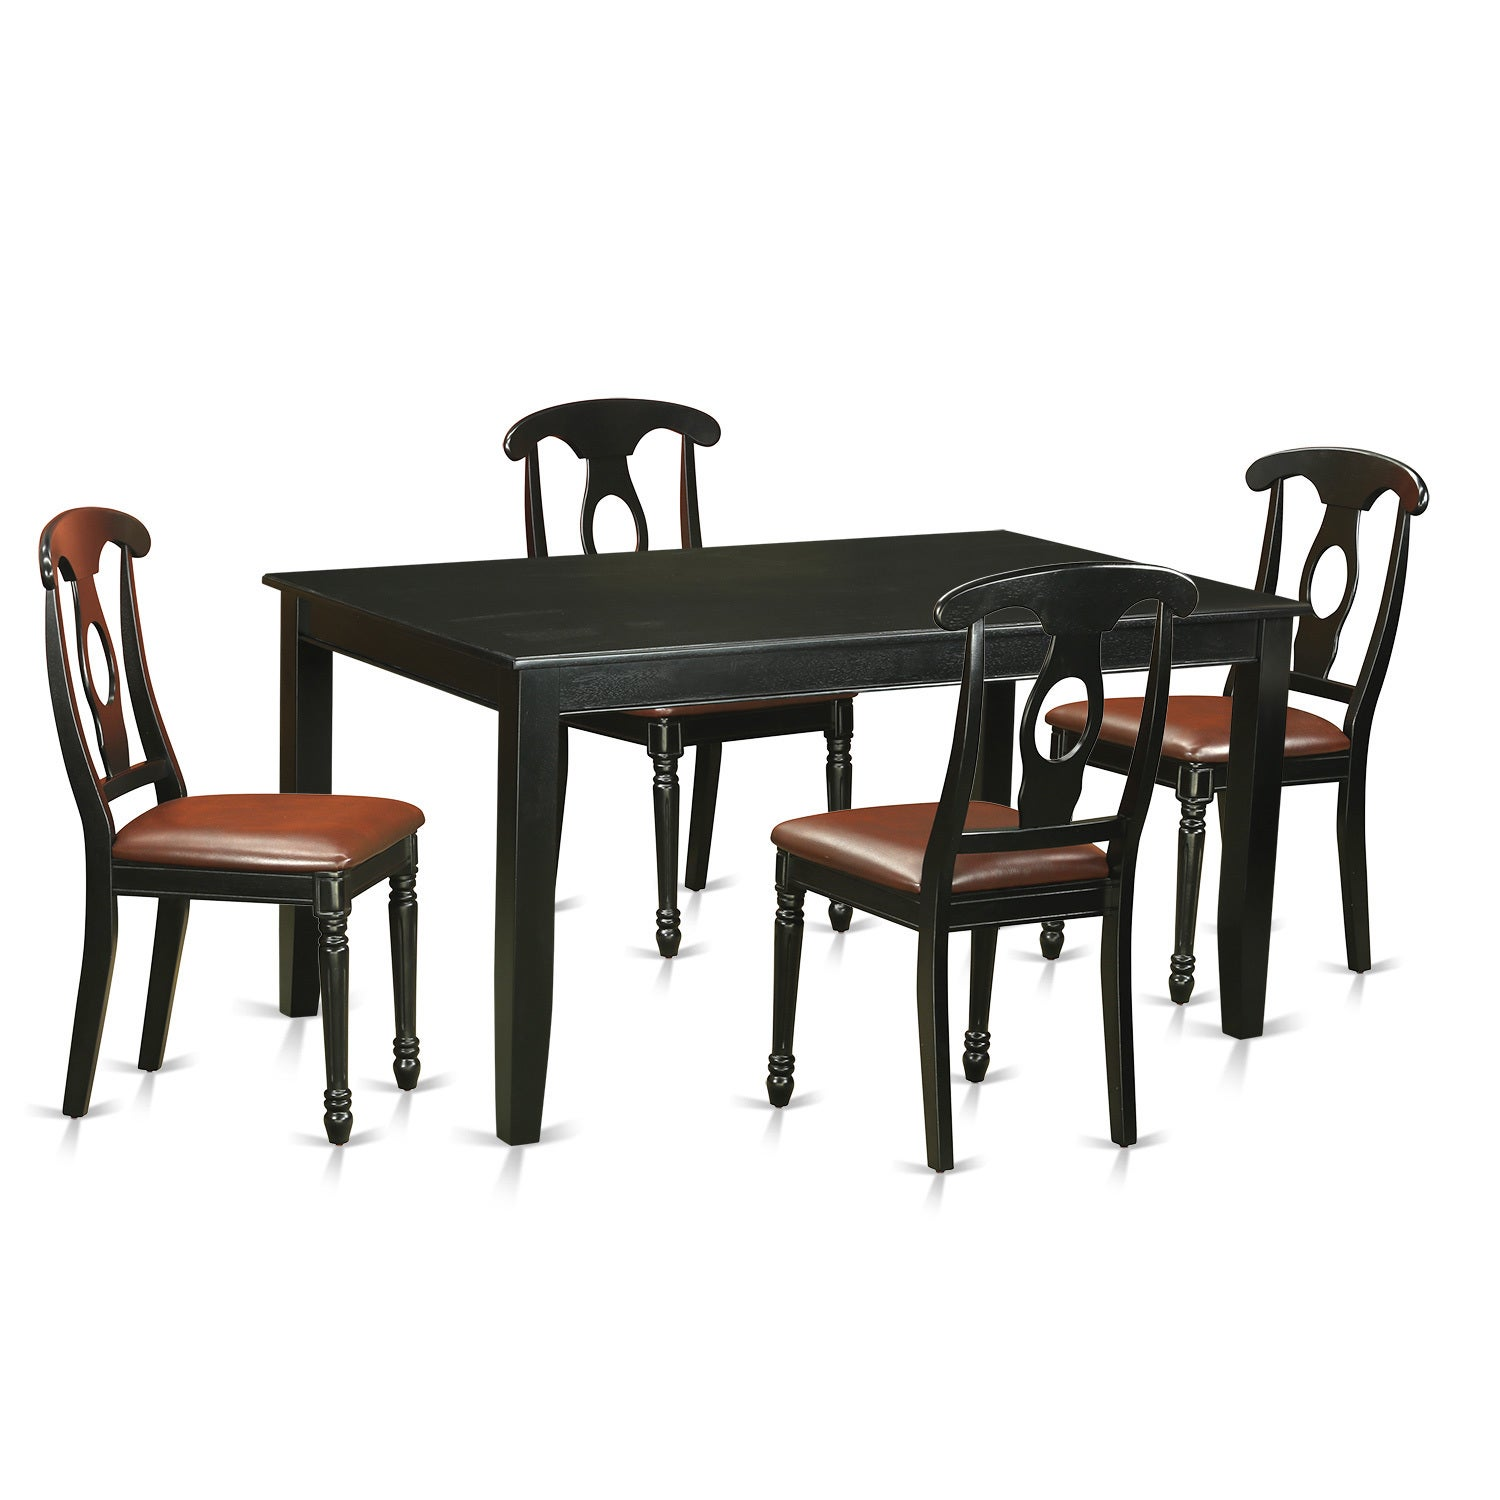 Remarkable Duke5 Blk Lc 5 Piece Dining Room Table And Chairs Gmtry Best Dining Table And Chair Ideas Images Gmtryco